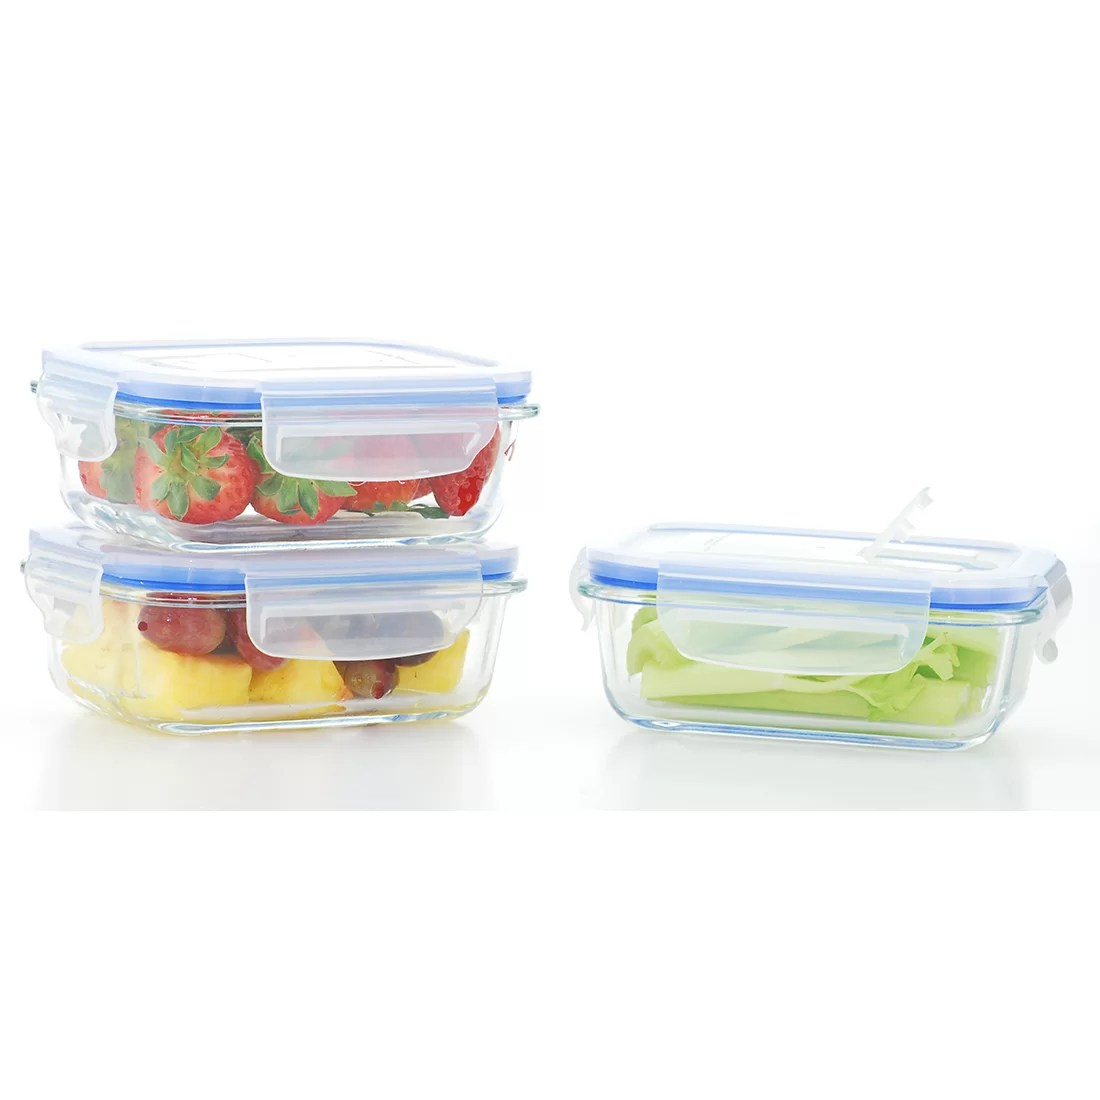 Kitchen Storage Containers With Locking Lids